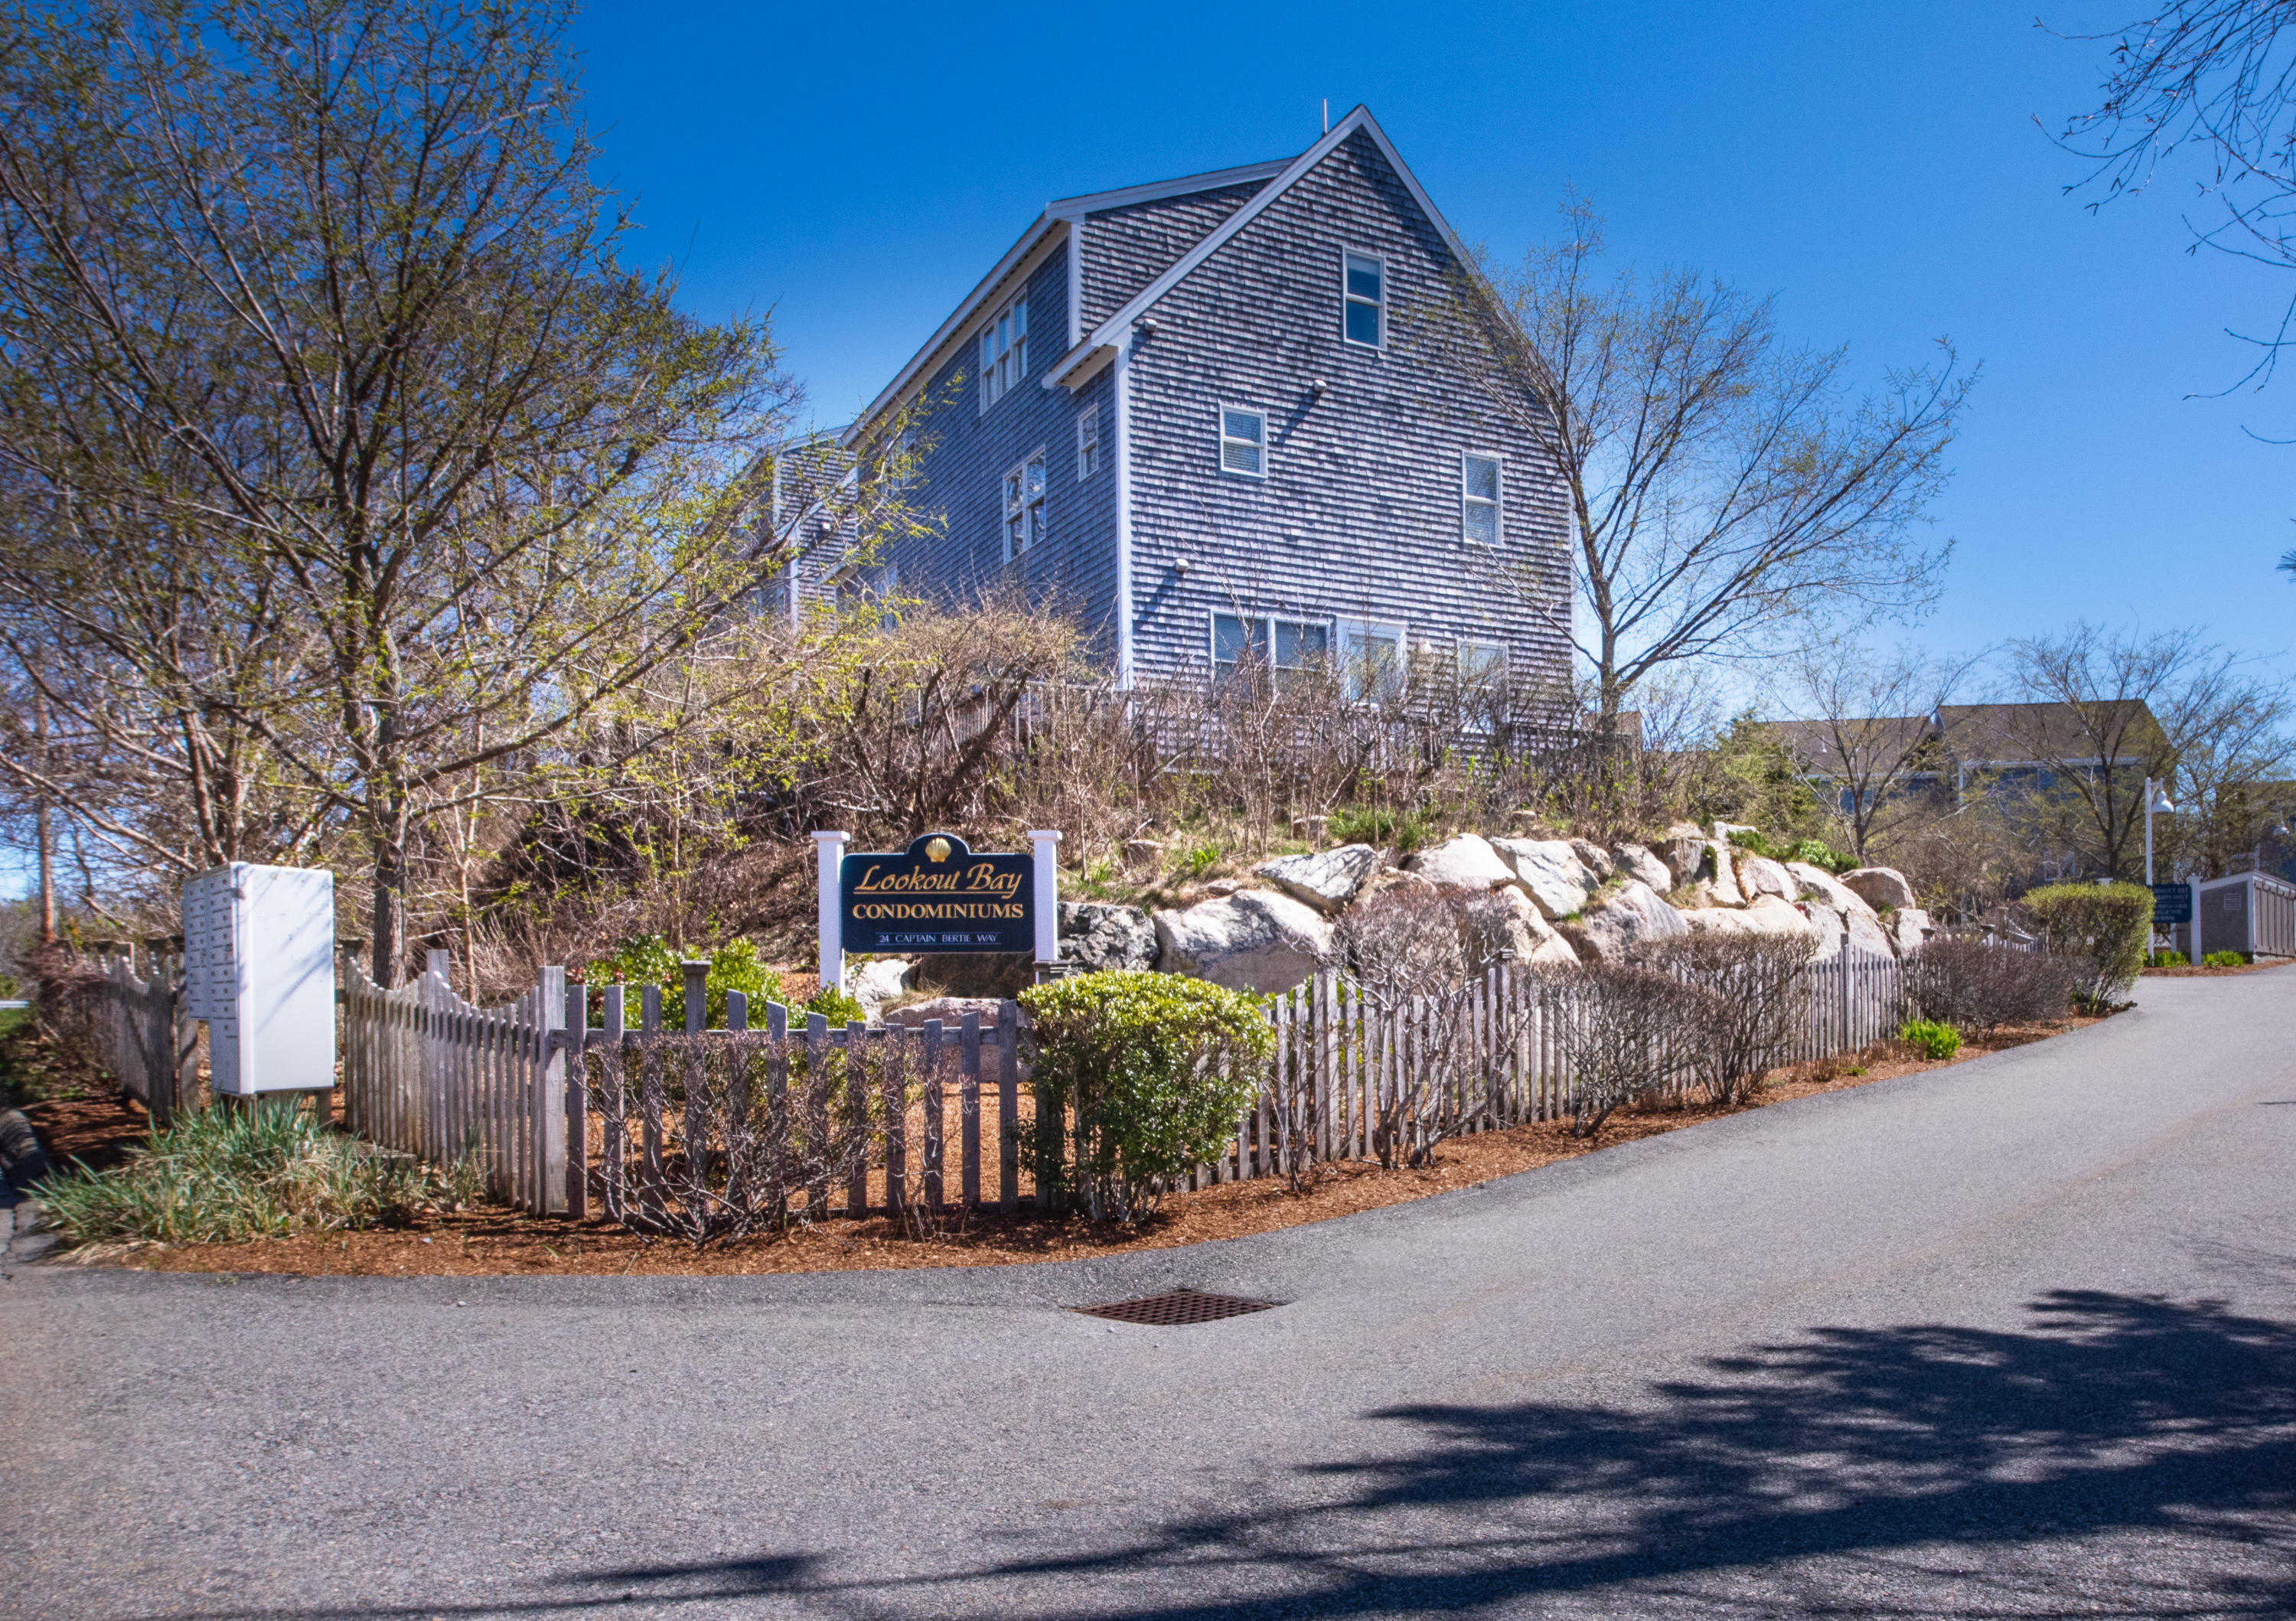 24 Capt Berties Way #Q, Provincetown, MA 02657 now has a new price of $769,000!